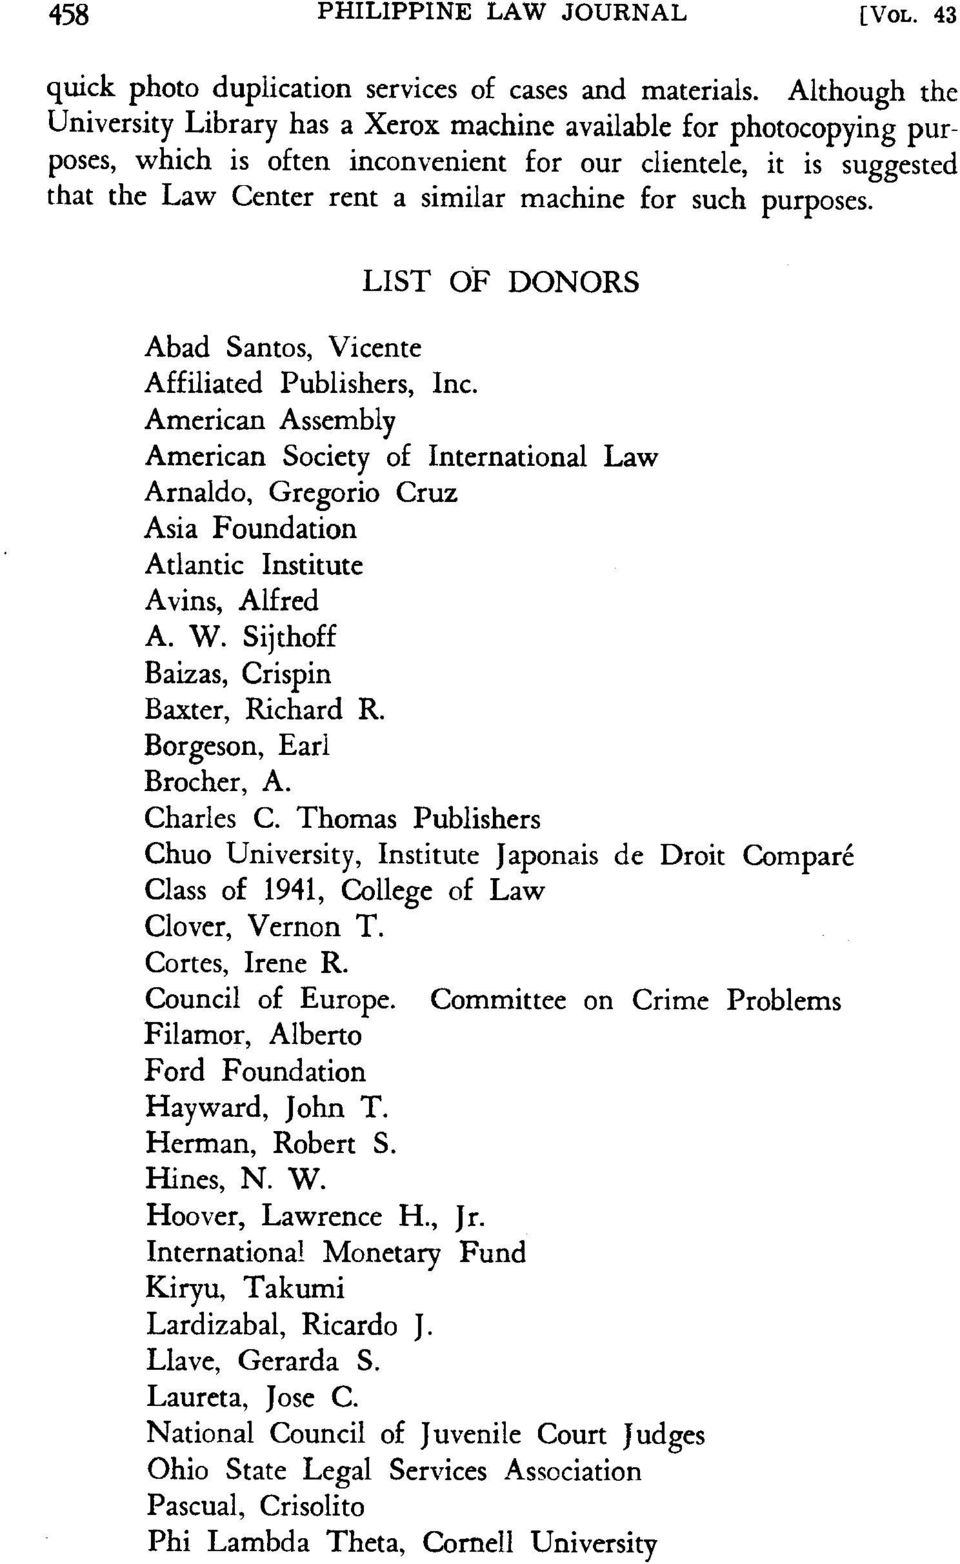 such purposes. Abad Santos, Vicente Affiliated Publishers, Inc. American Assembly American Society of International Law Arnaldo, Gregorio Cruz Asia Foundation Atlantic Institute Avins, Alfred A. W.